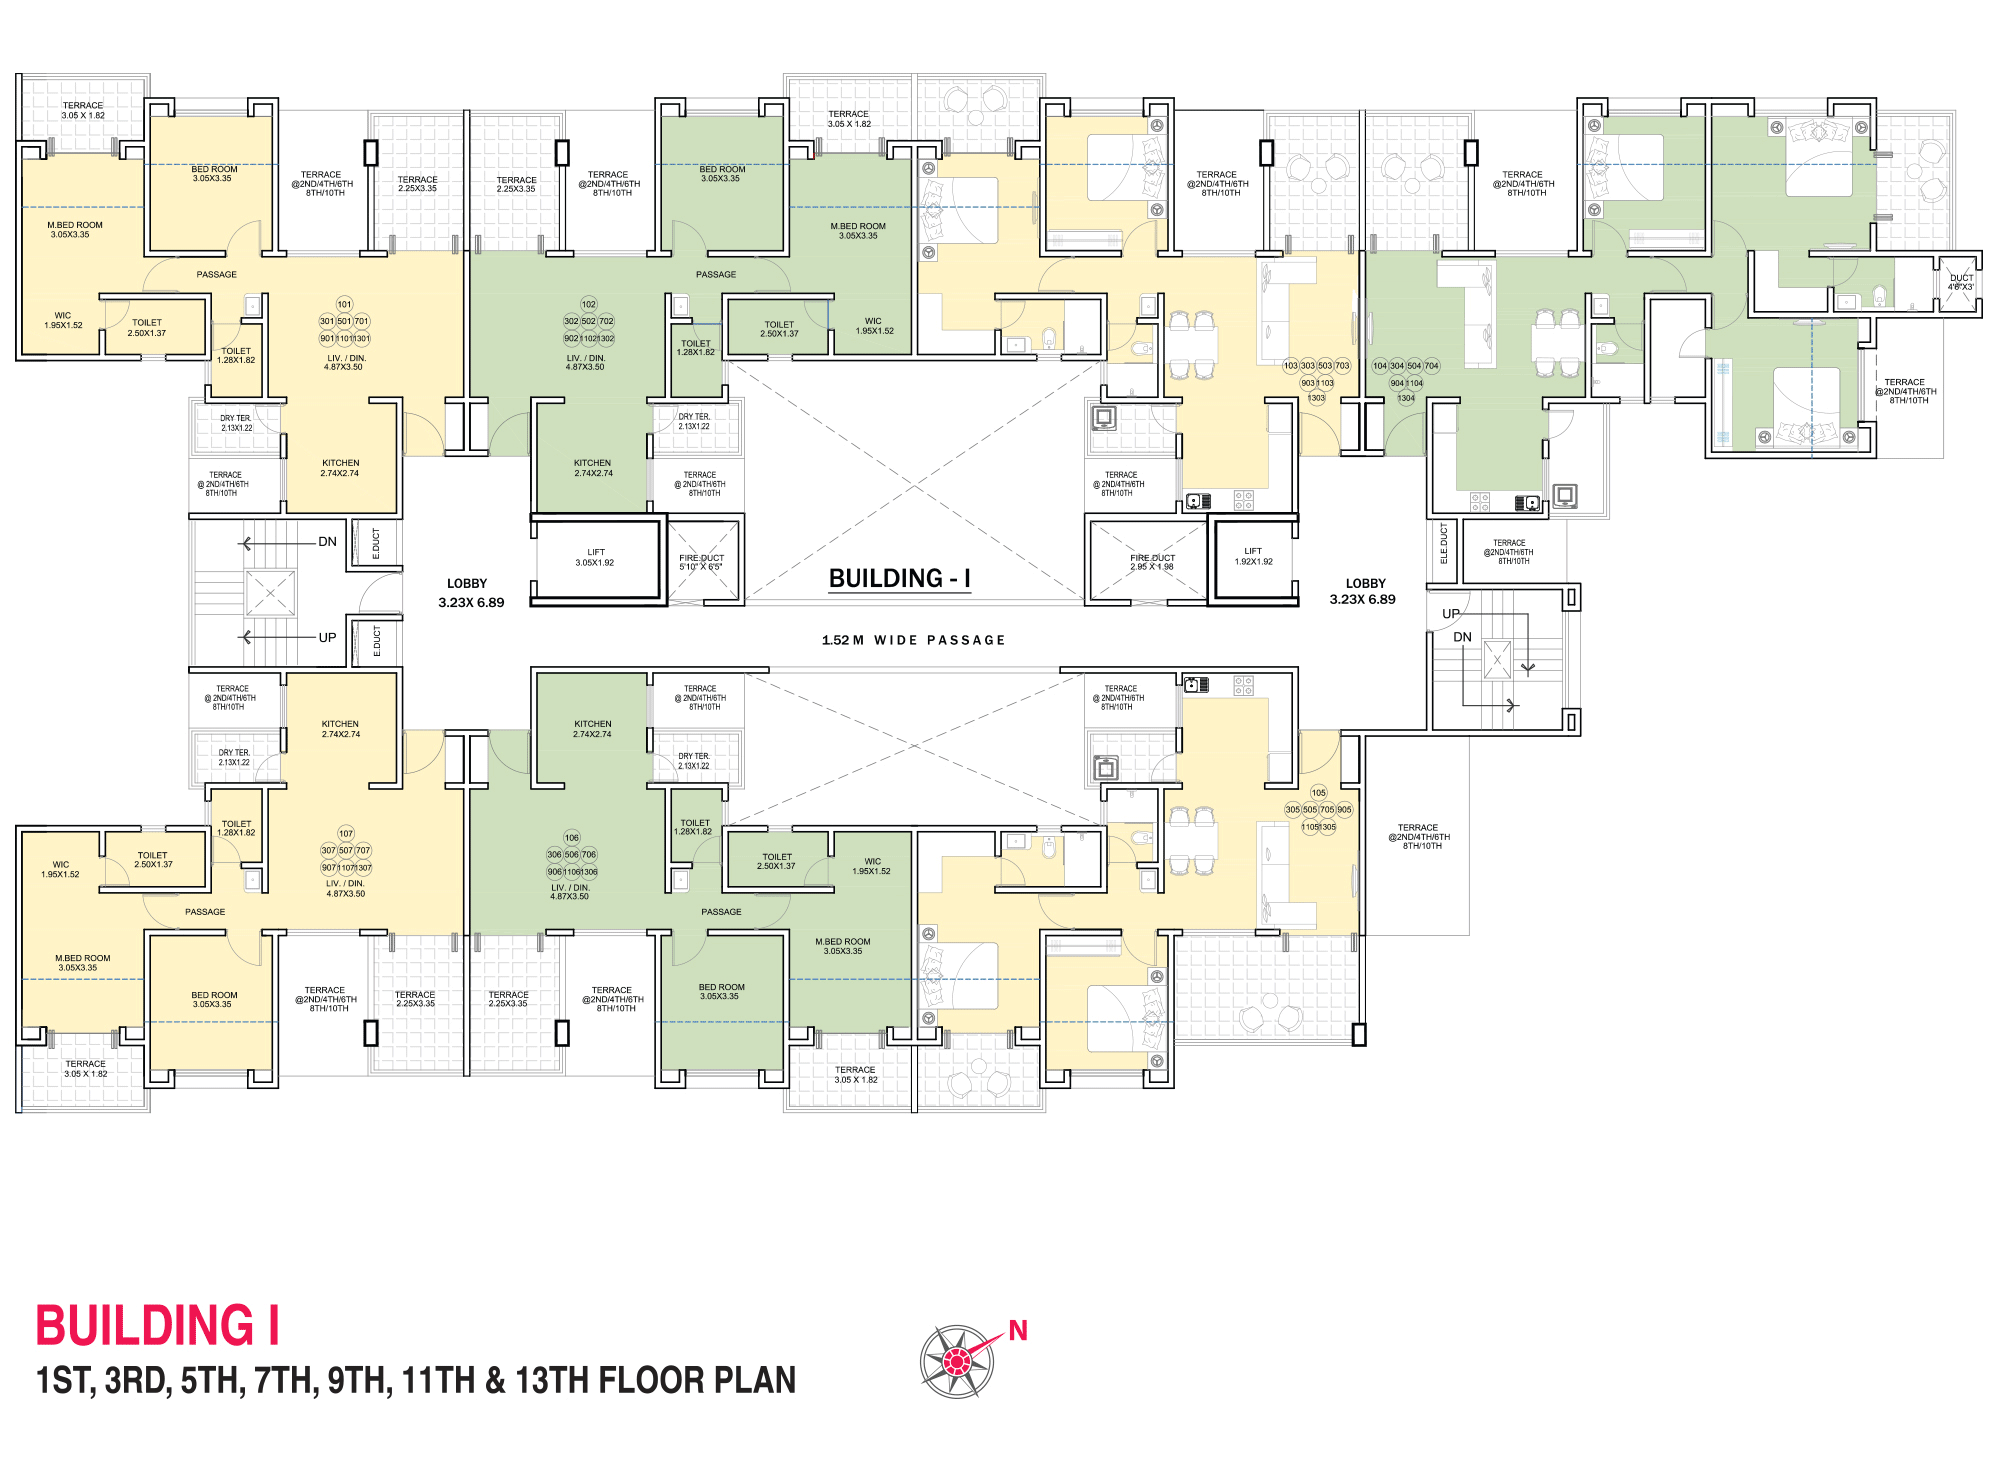 Pristine Pacific_Wing I 1,3,5,7,9,11,13 FLOOR PLAN